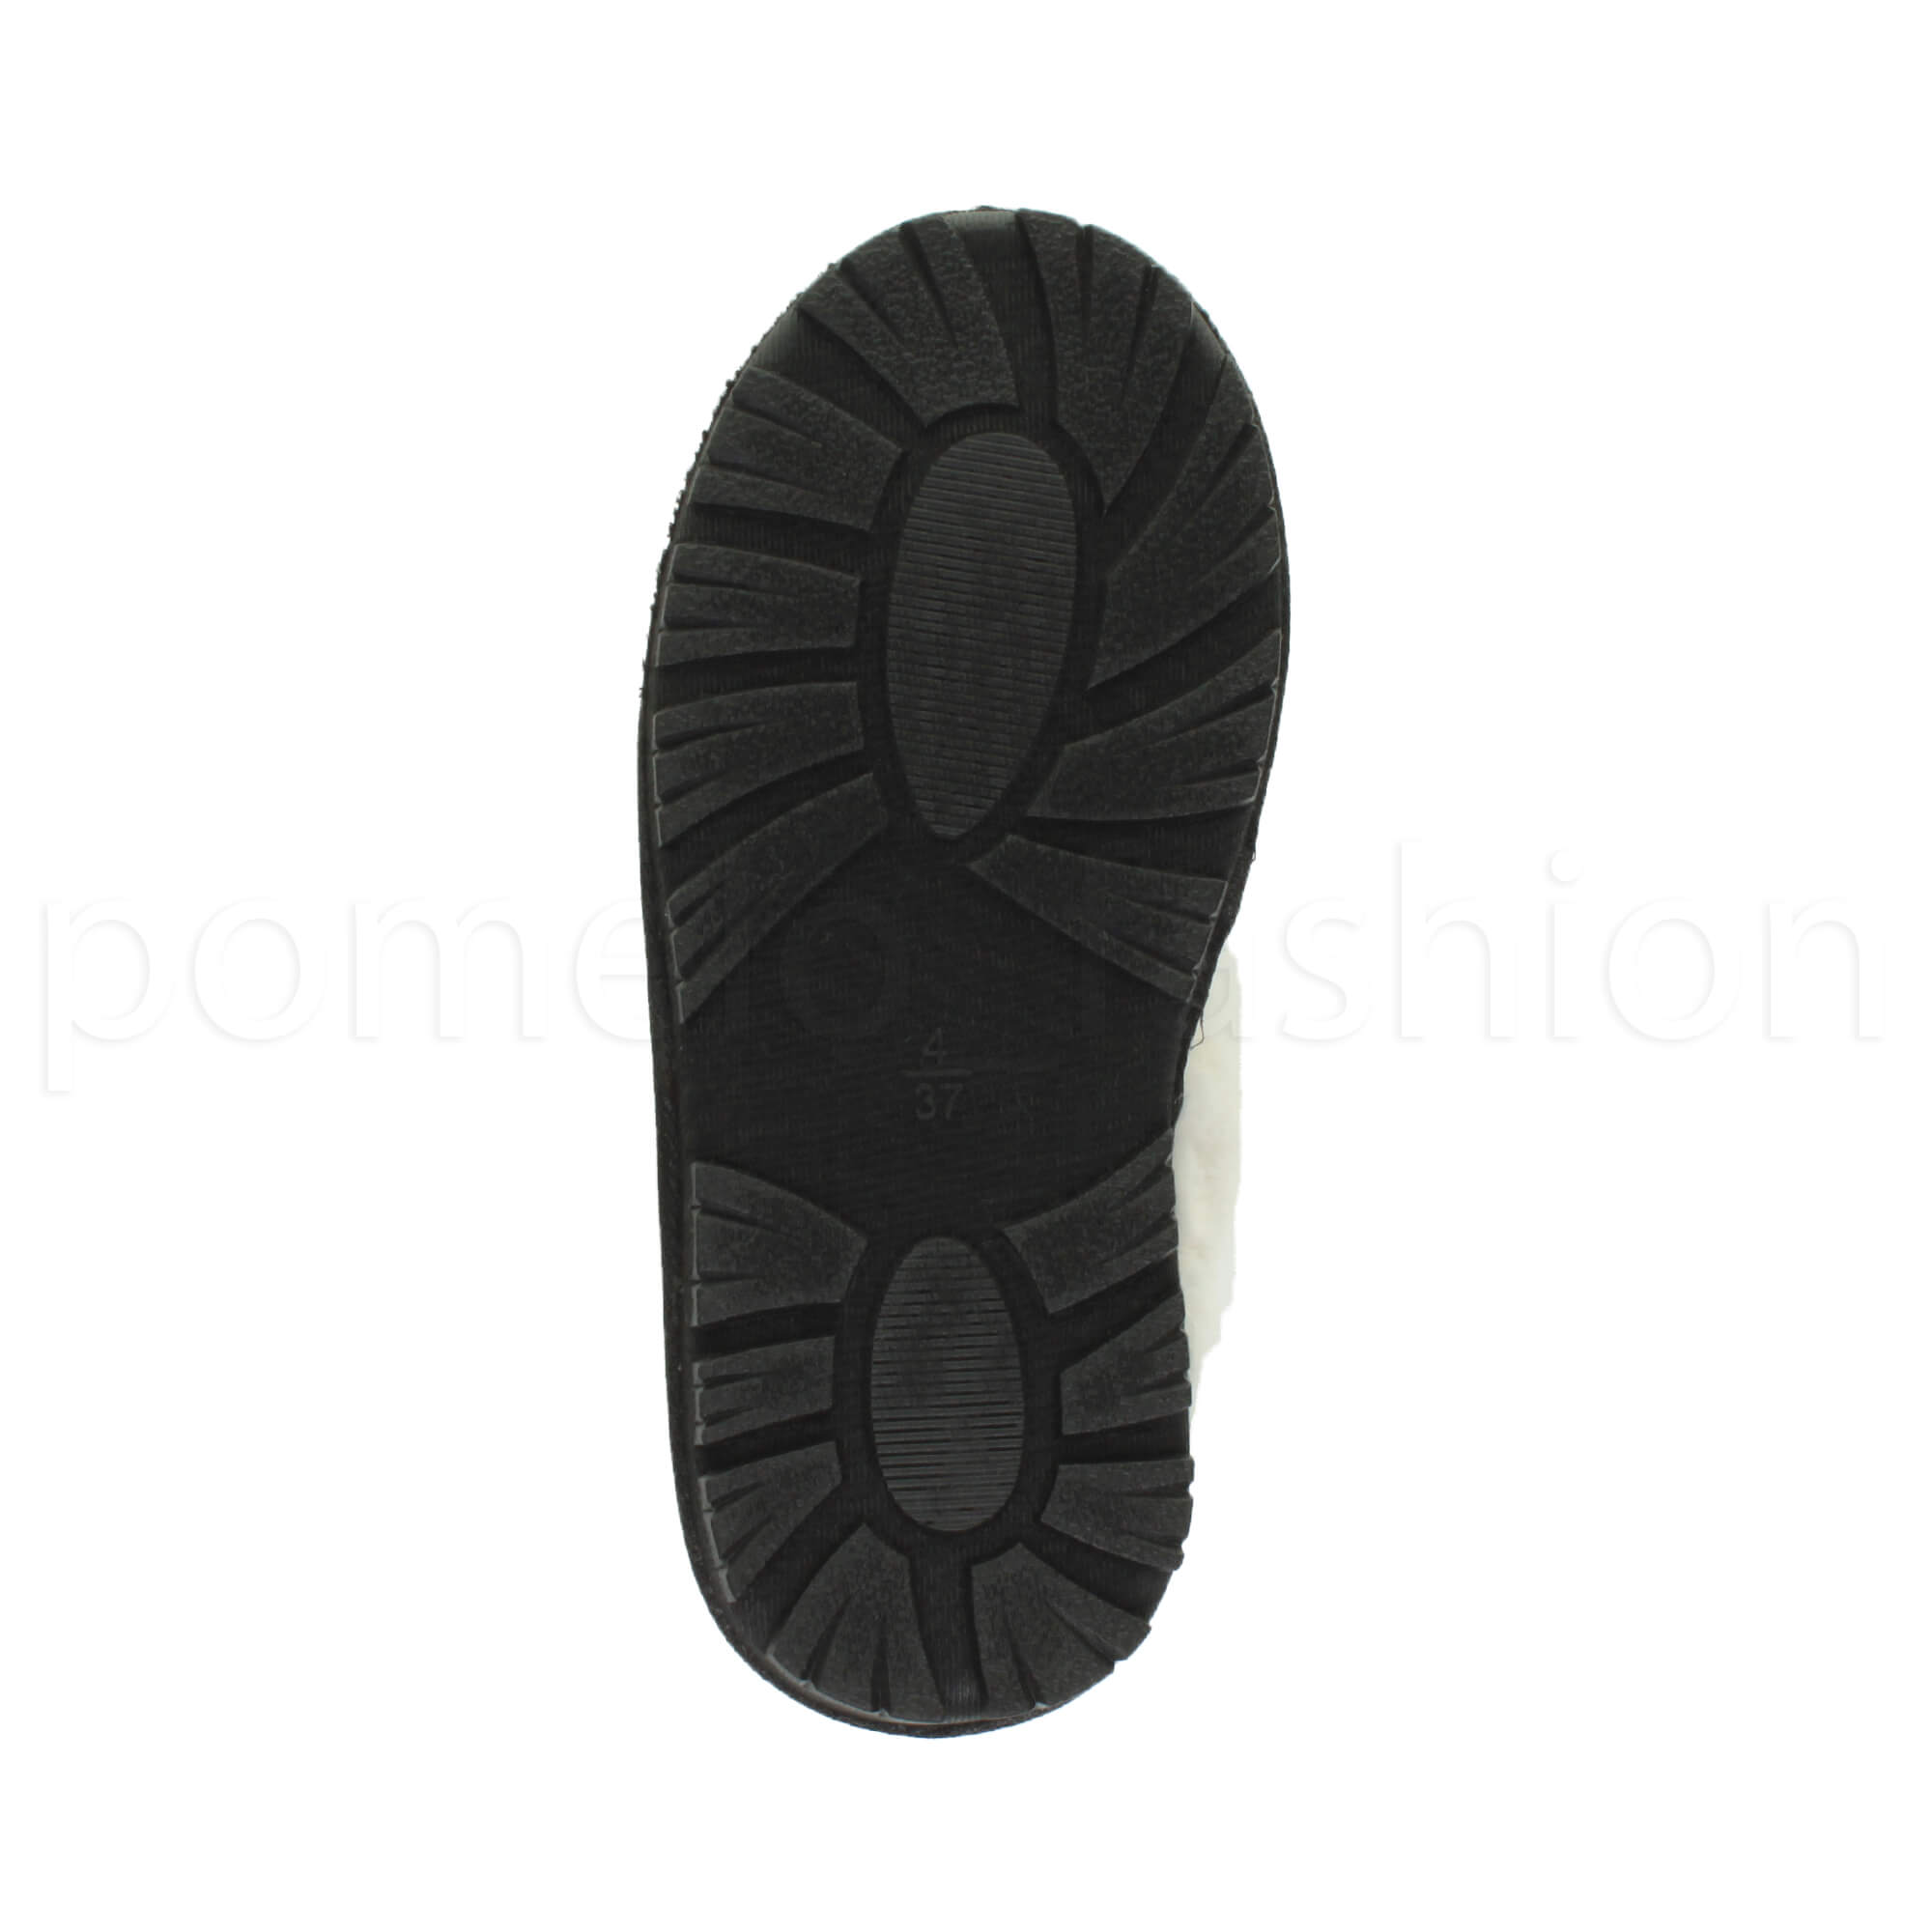 29b1b0d4860d WOMENS LADIES FLAT FUR LINED COMFORTABLE WINTER MULES SLIPPERS HOUSE ...